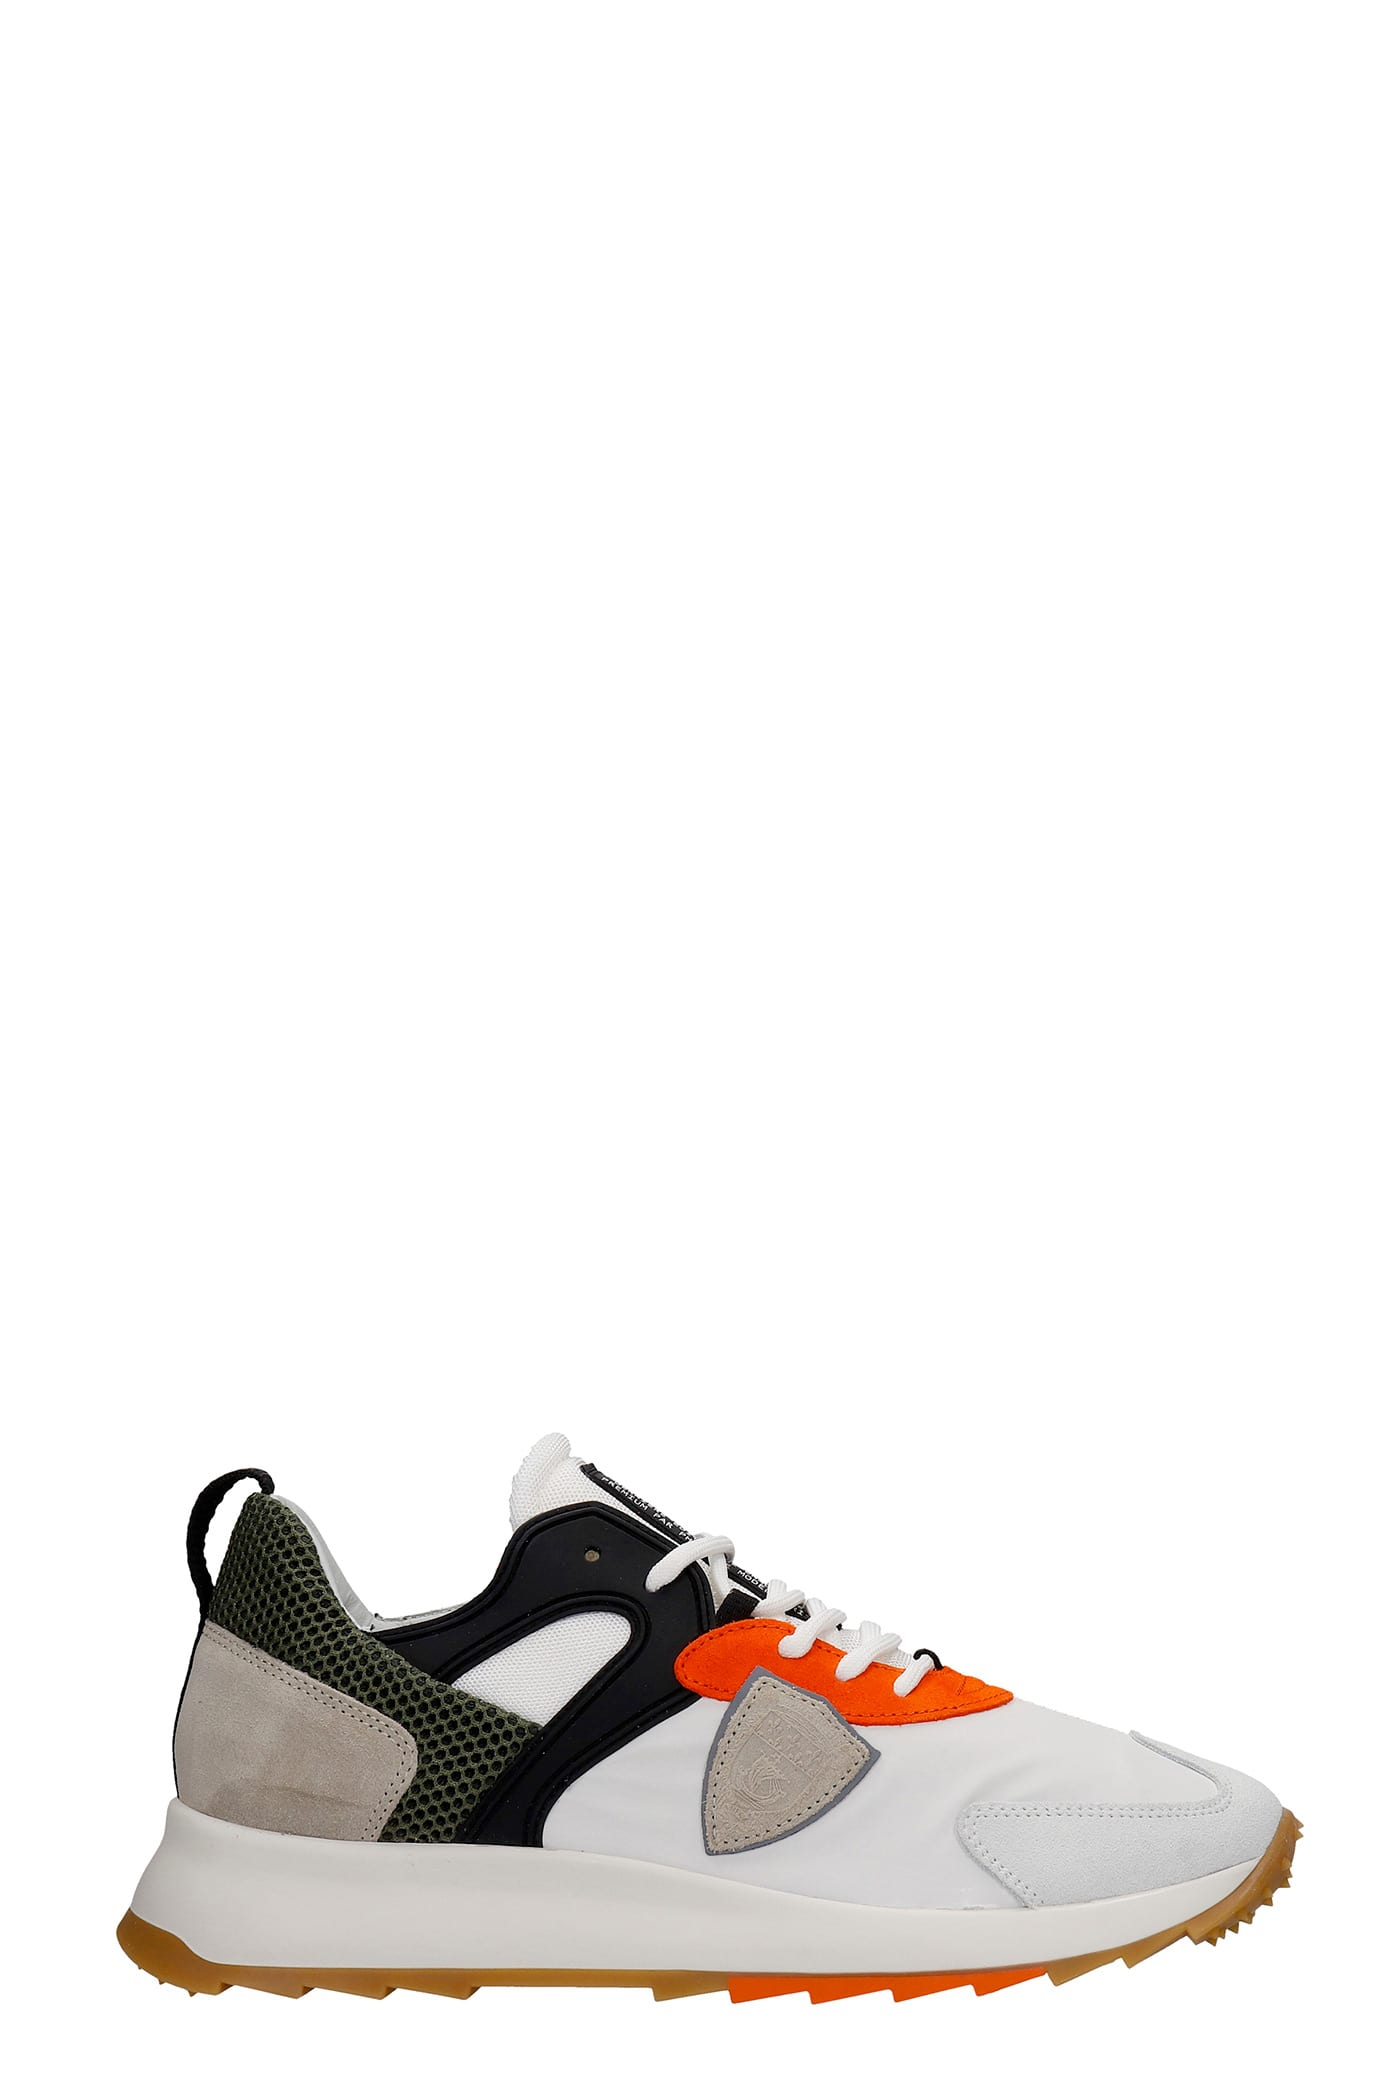 Philippe Model Leathers ROYALE SNEAKERS IN WHITE SYNTHETIC FIBERS